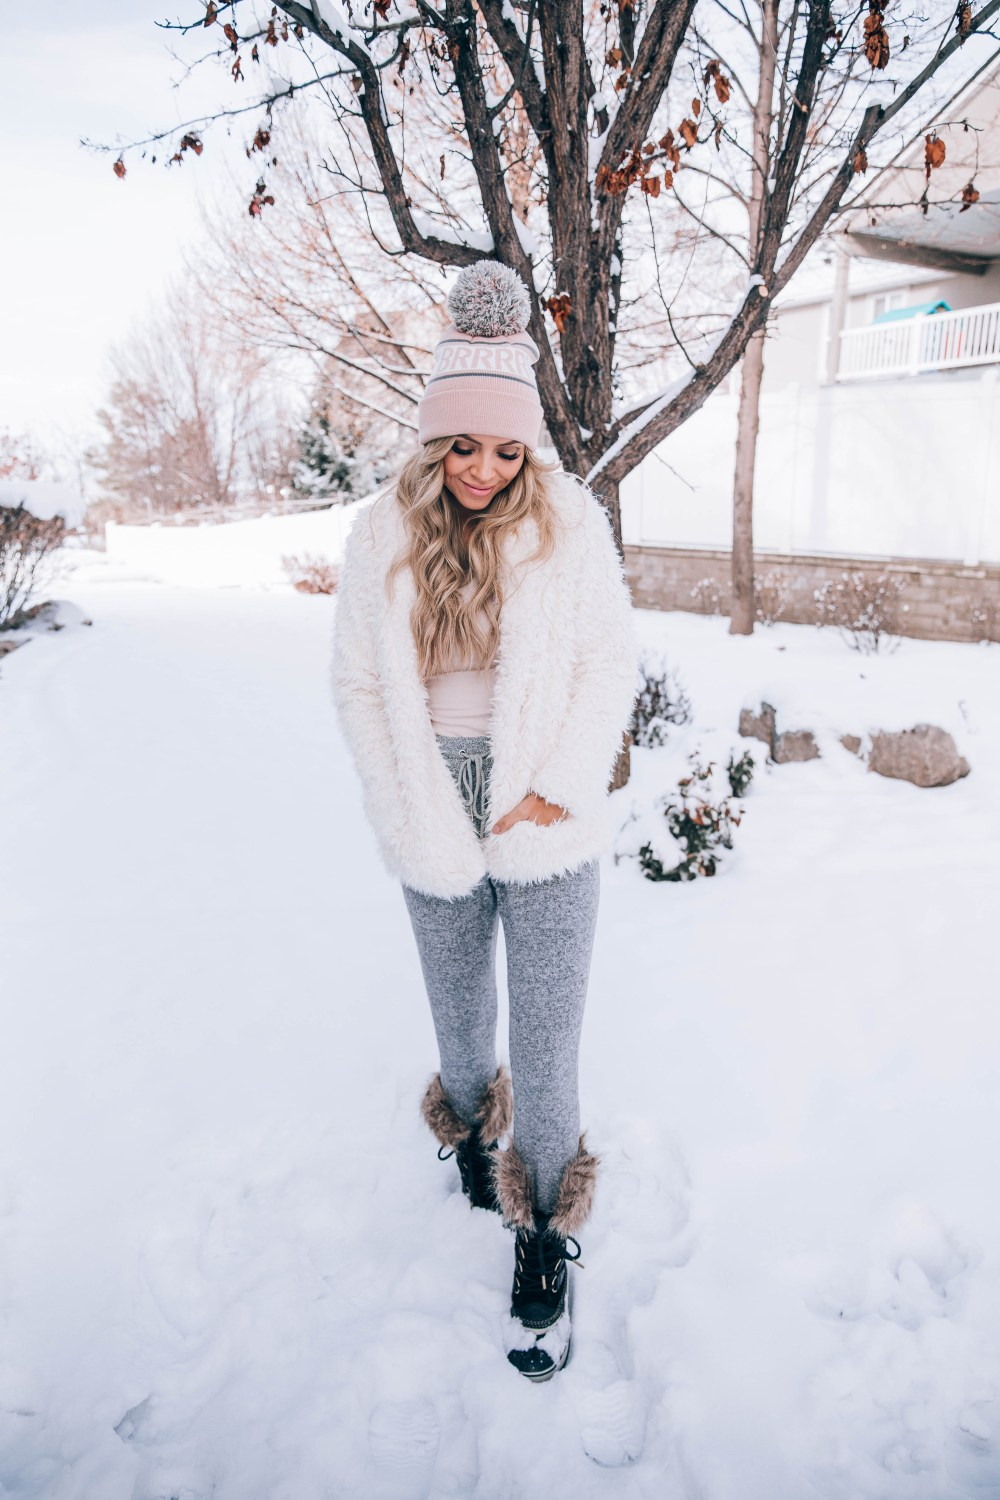 I found the best snow boots that are cute and keep my feet cozy warm! Also listing some other winter essentials to brave the cold weather! The large pom beanie is my favorite! #winterfashion #fashion #trulydestiny